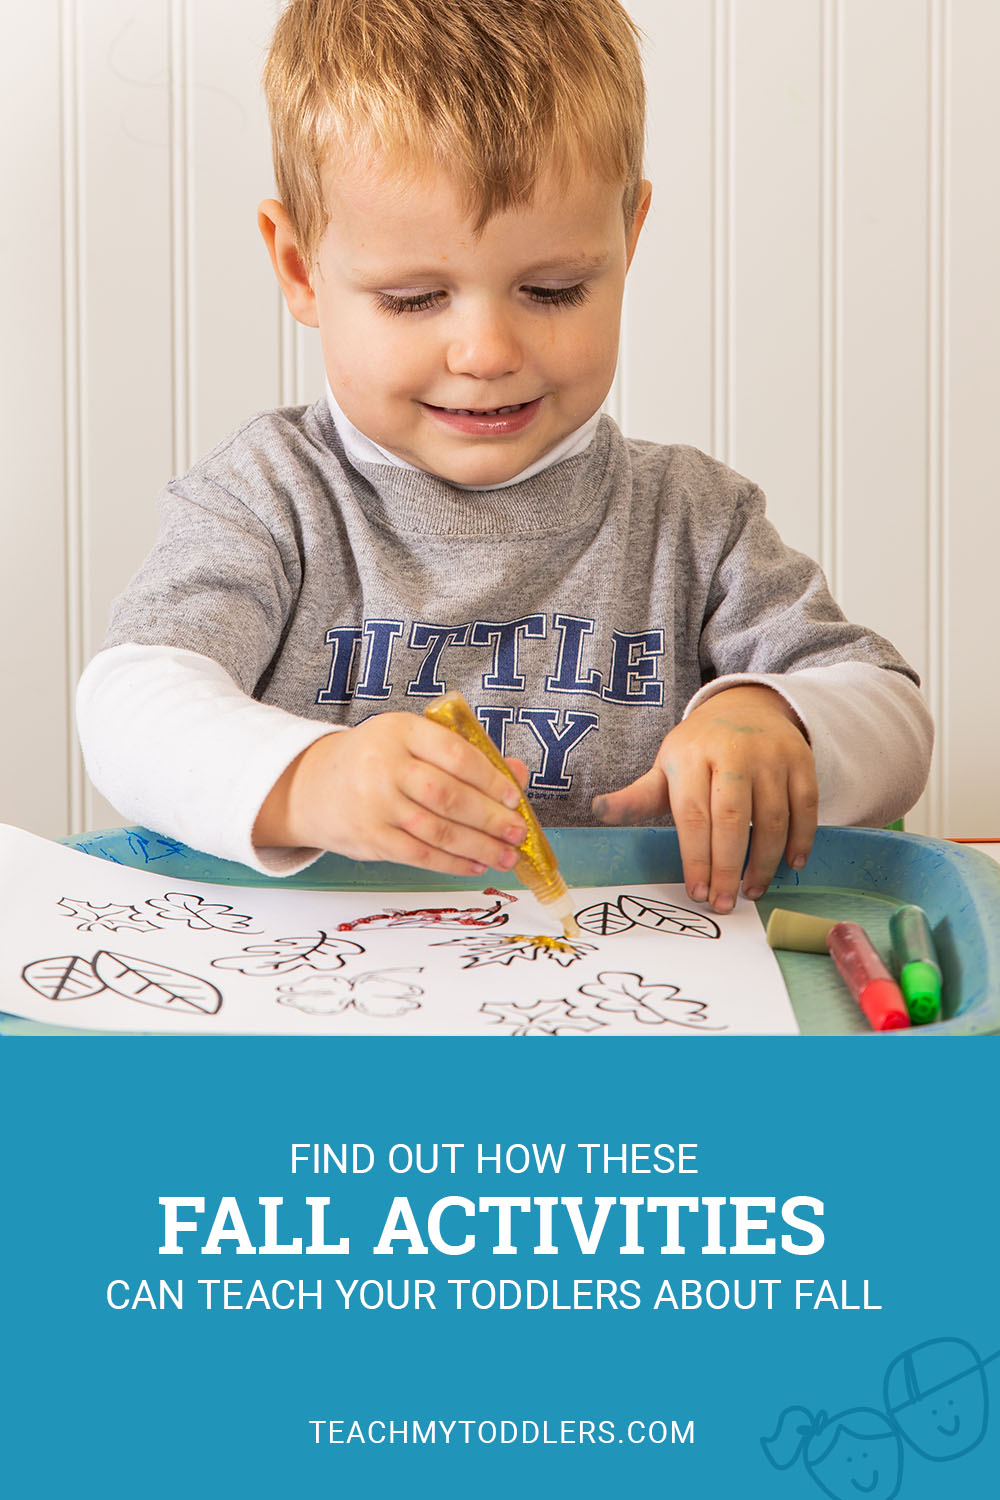 Find out how these fall activities can teach toddlers about fall